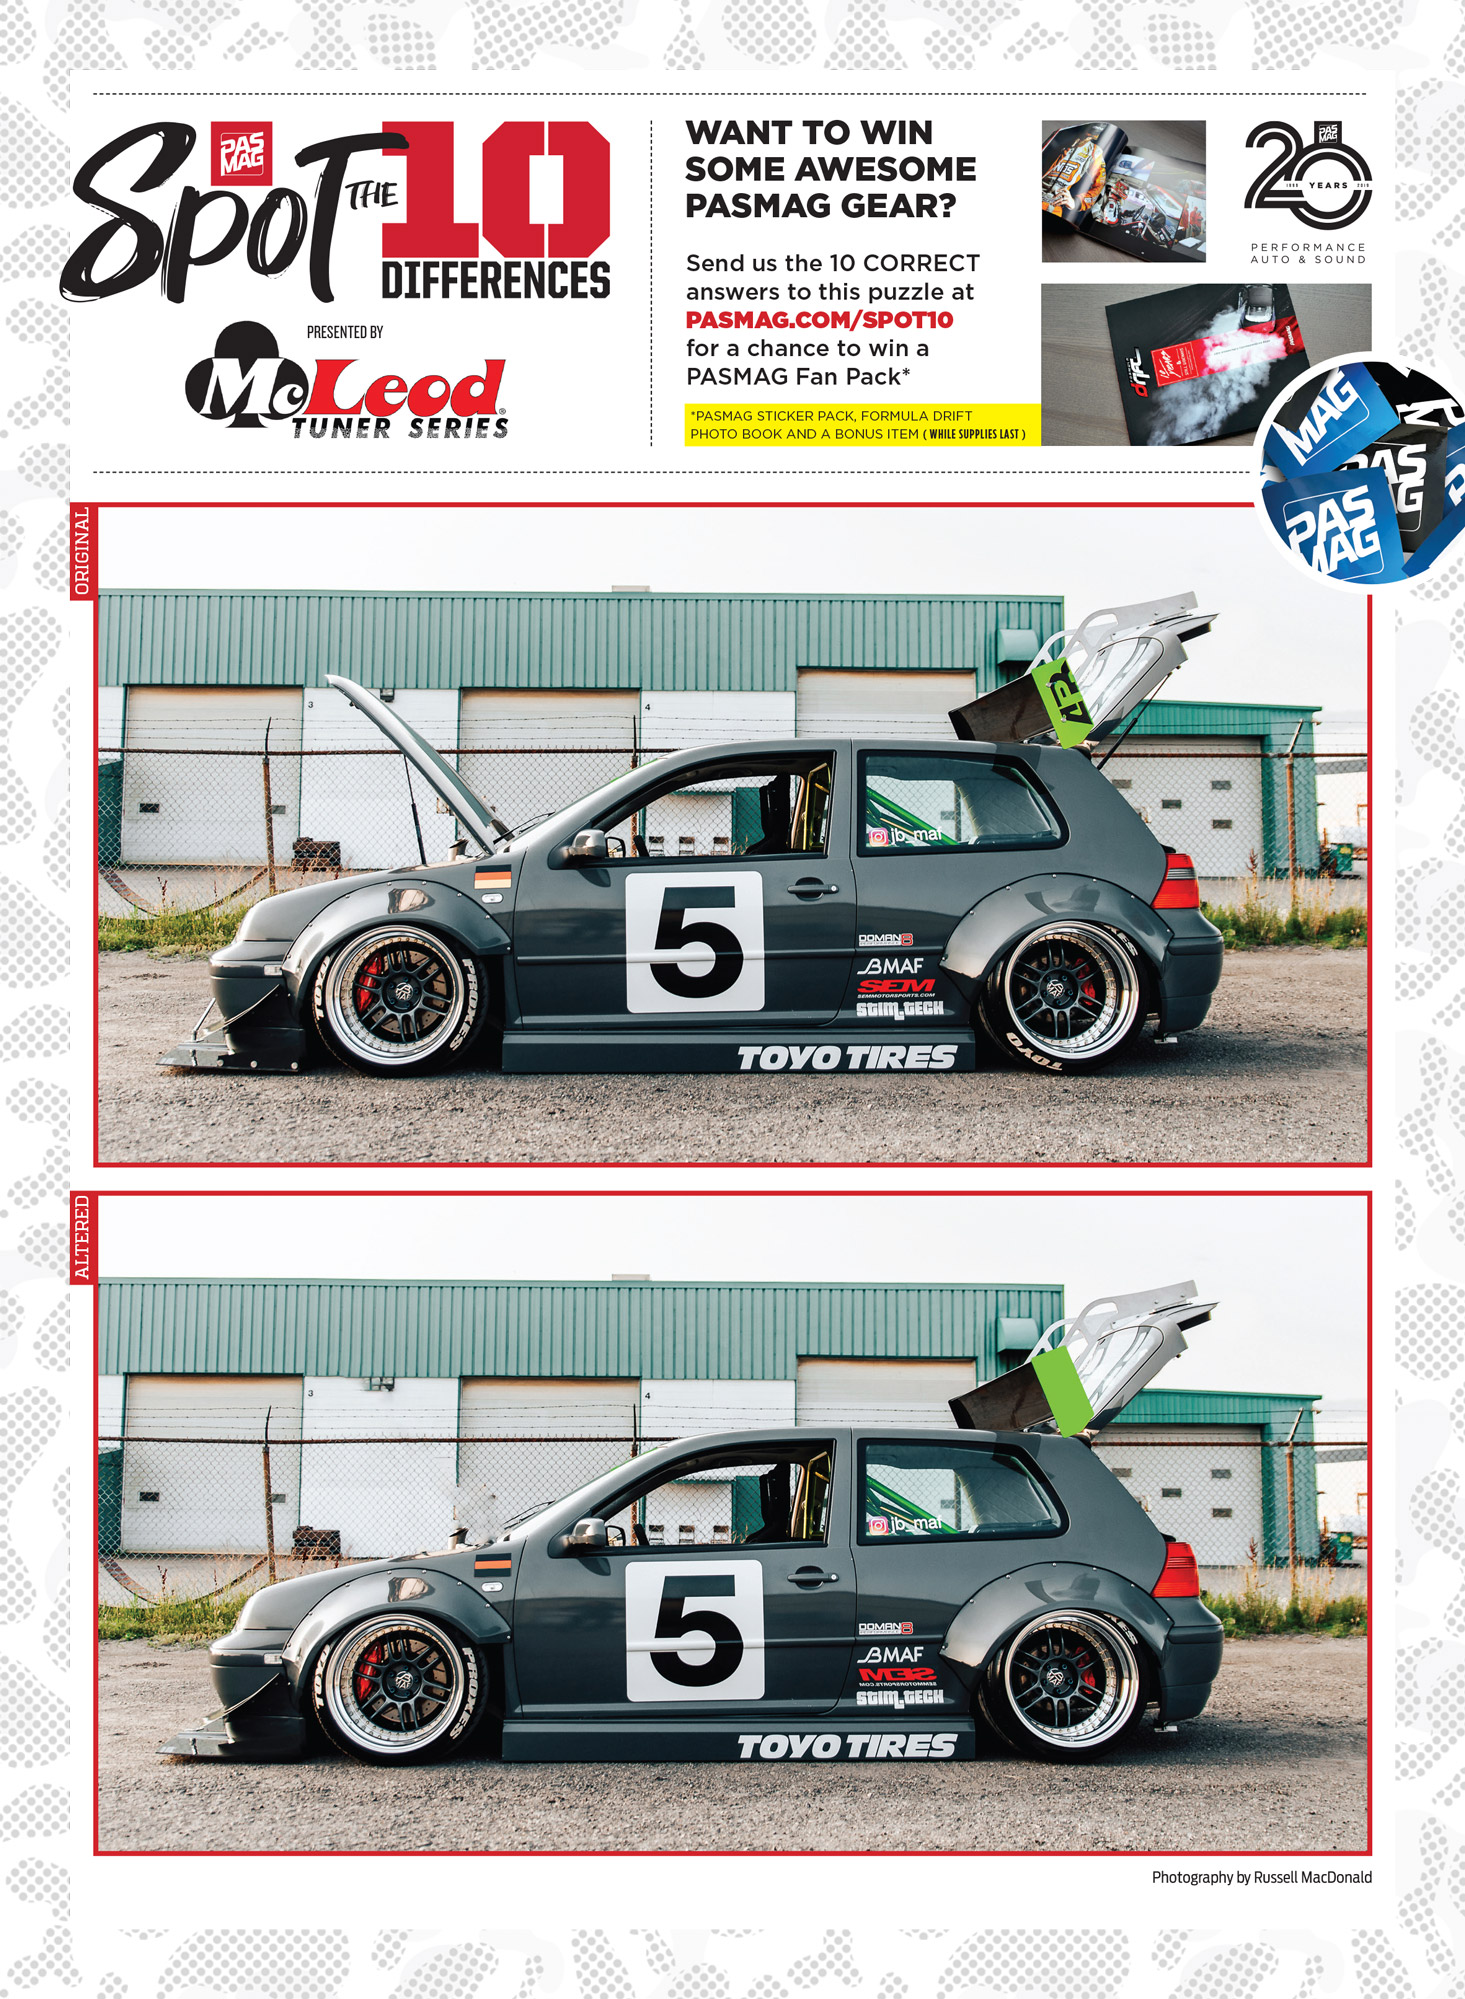 PASMAG Spot the Differences May 8 2020 Jason Bos 2003 VW Golf GTI pasmag